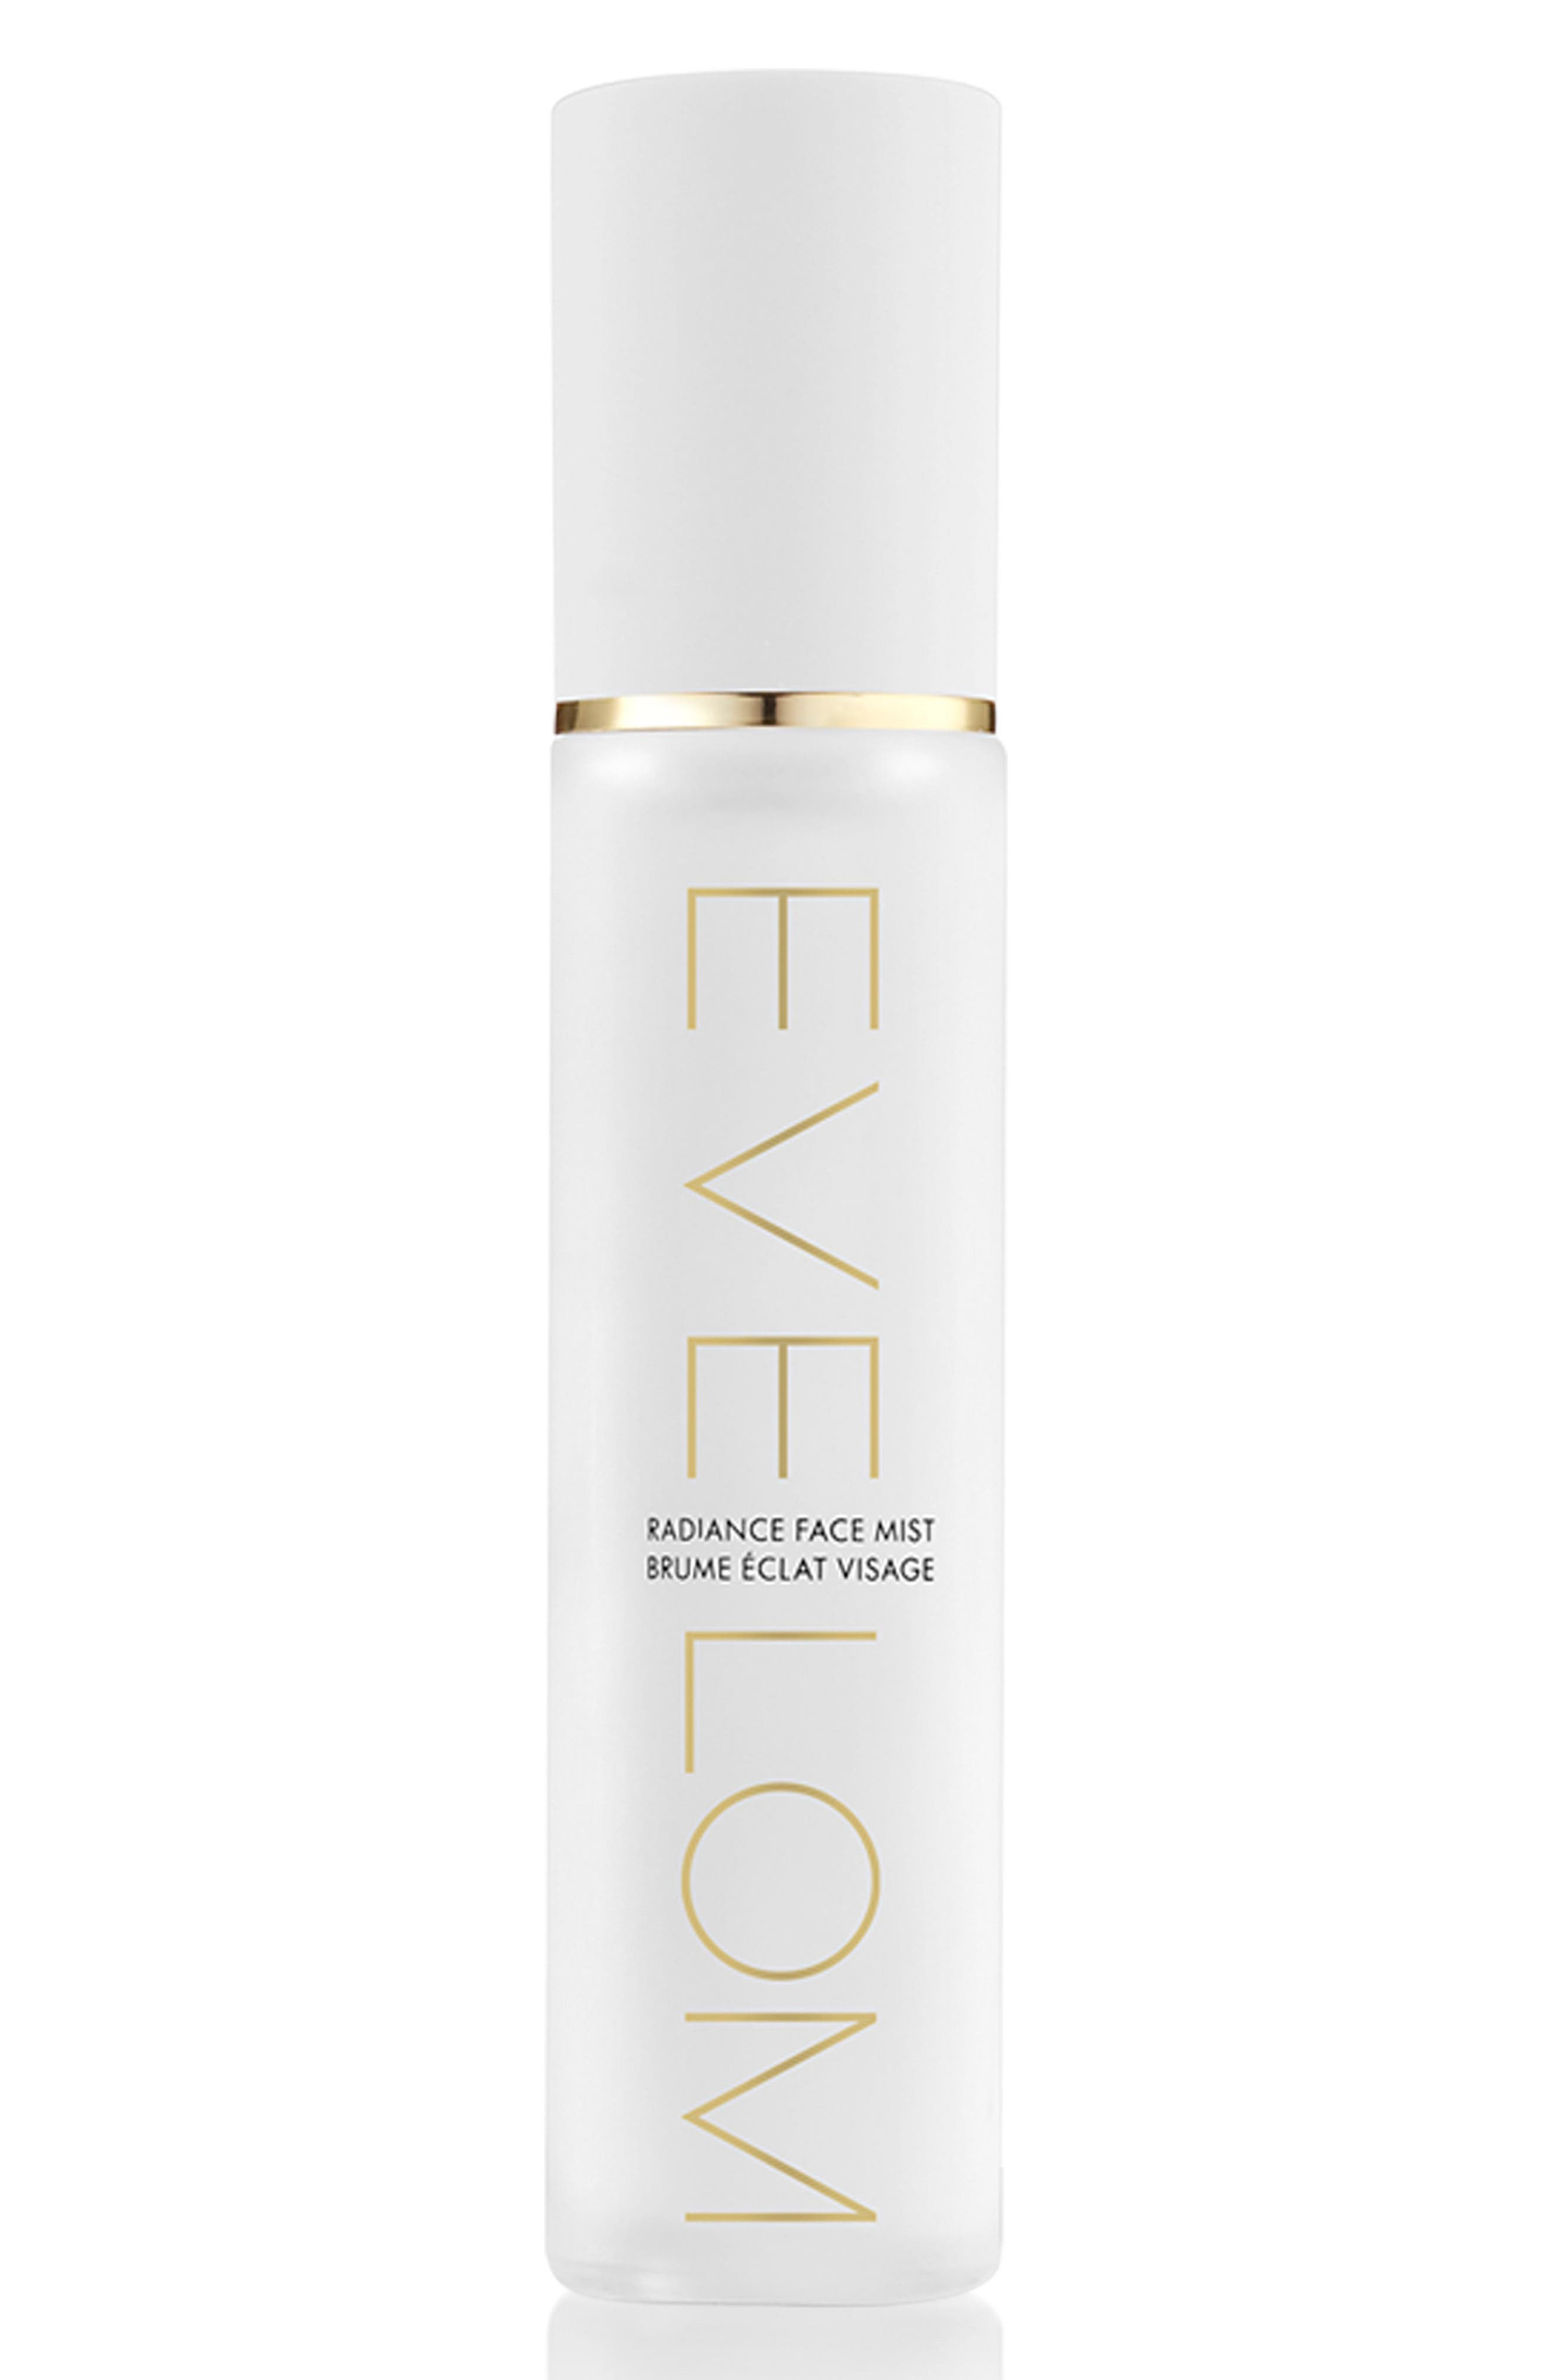 SPACE.NK.apothecary EVE LOM Radiance Face Mist,                         Main,                         color, No Color